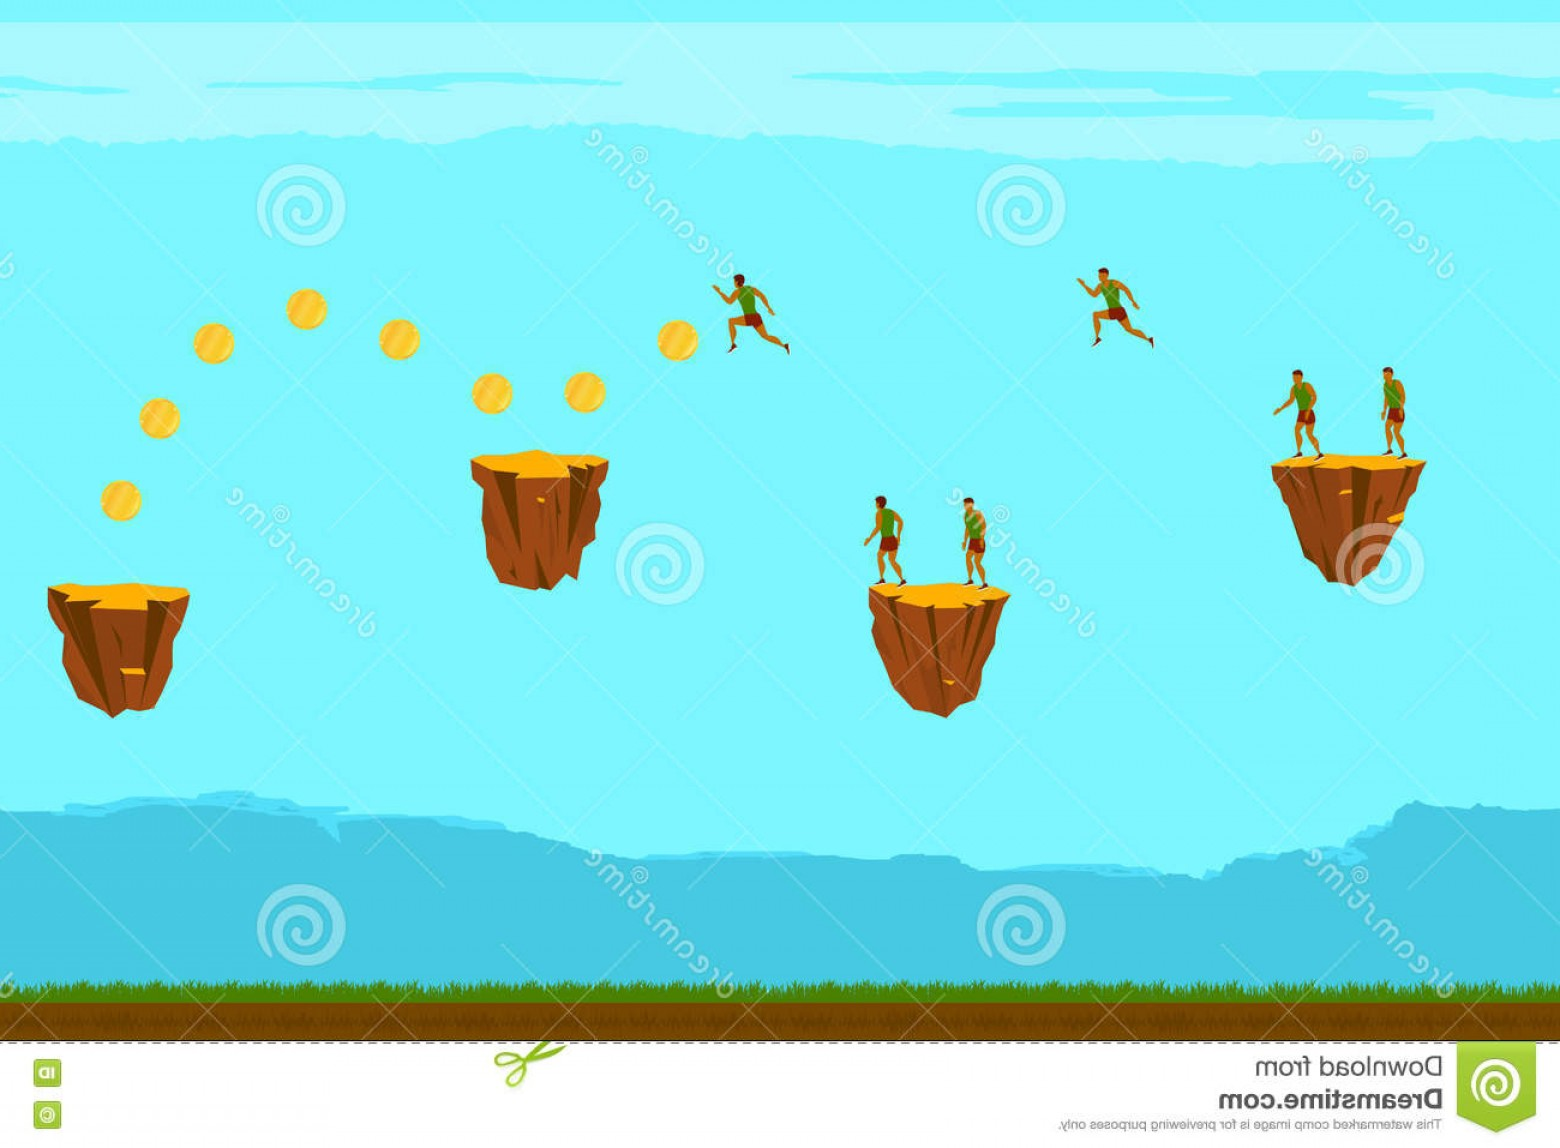 Vector Applications On Computers: Stock Illustration Seamless Background Games Mobile Applications Computers Man Runs Collect Gold Coins Vector Illustration Image